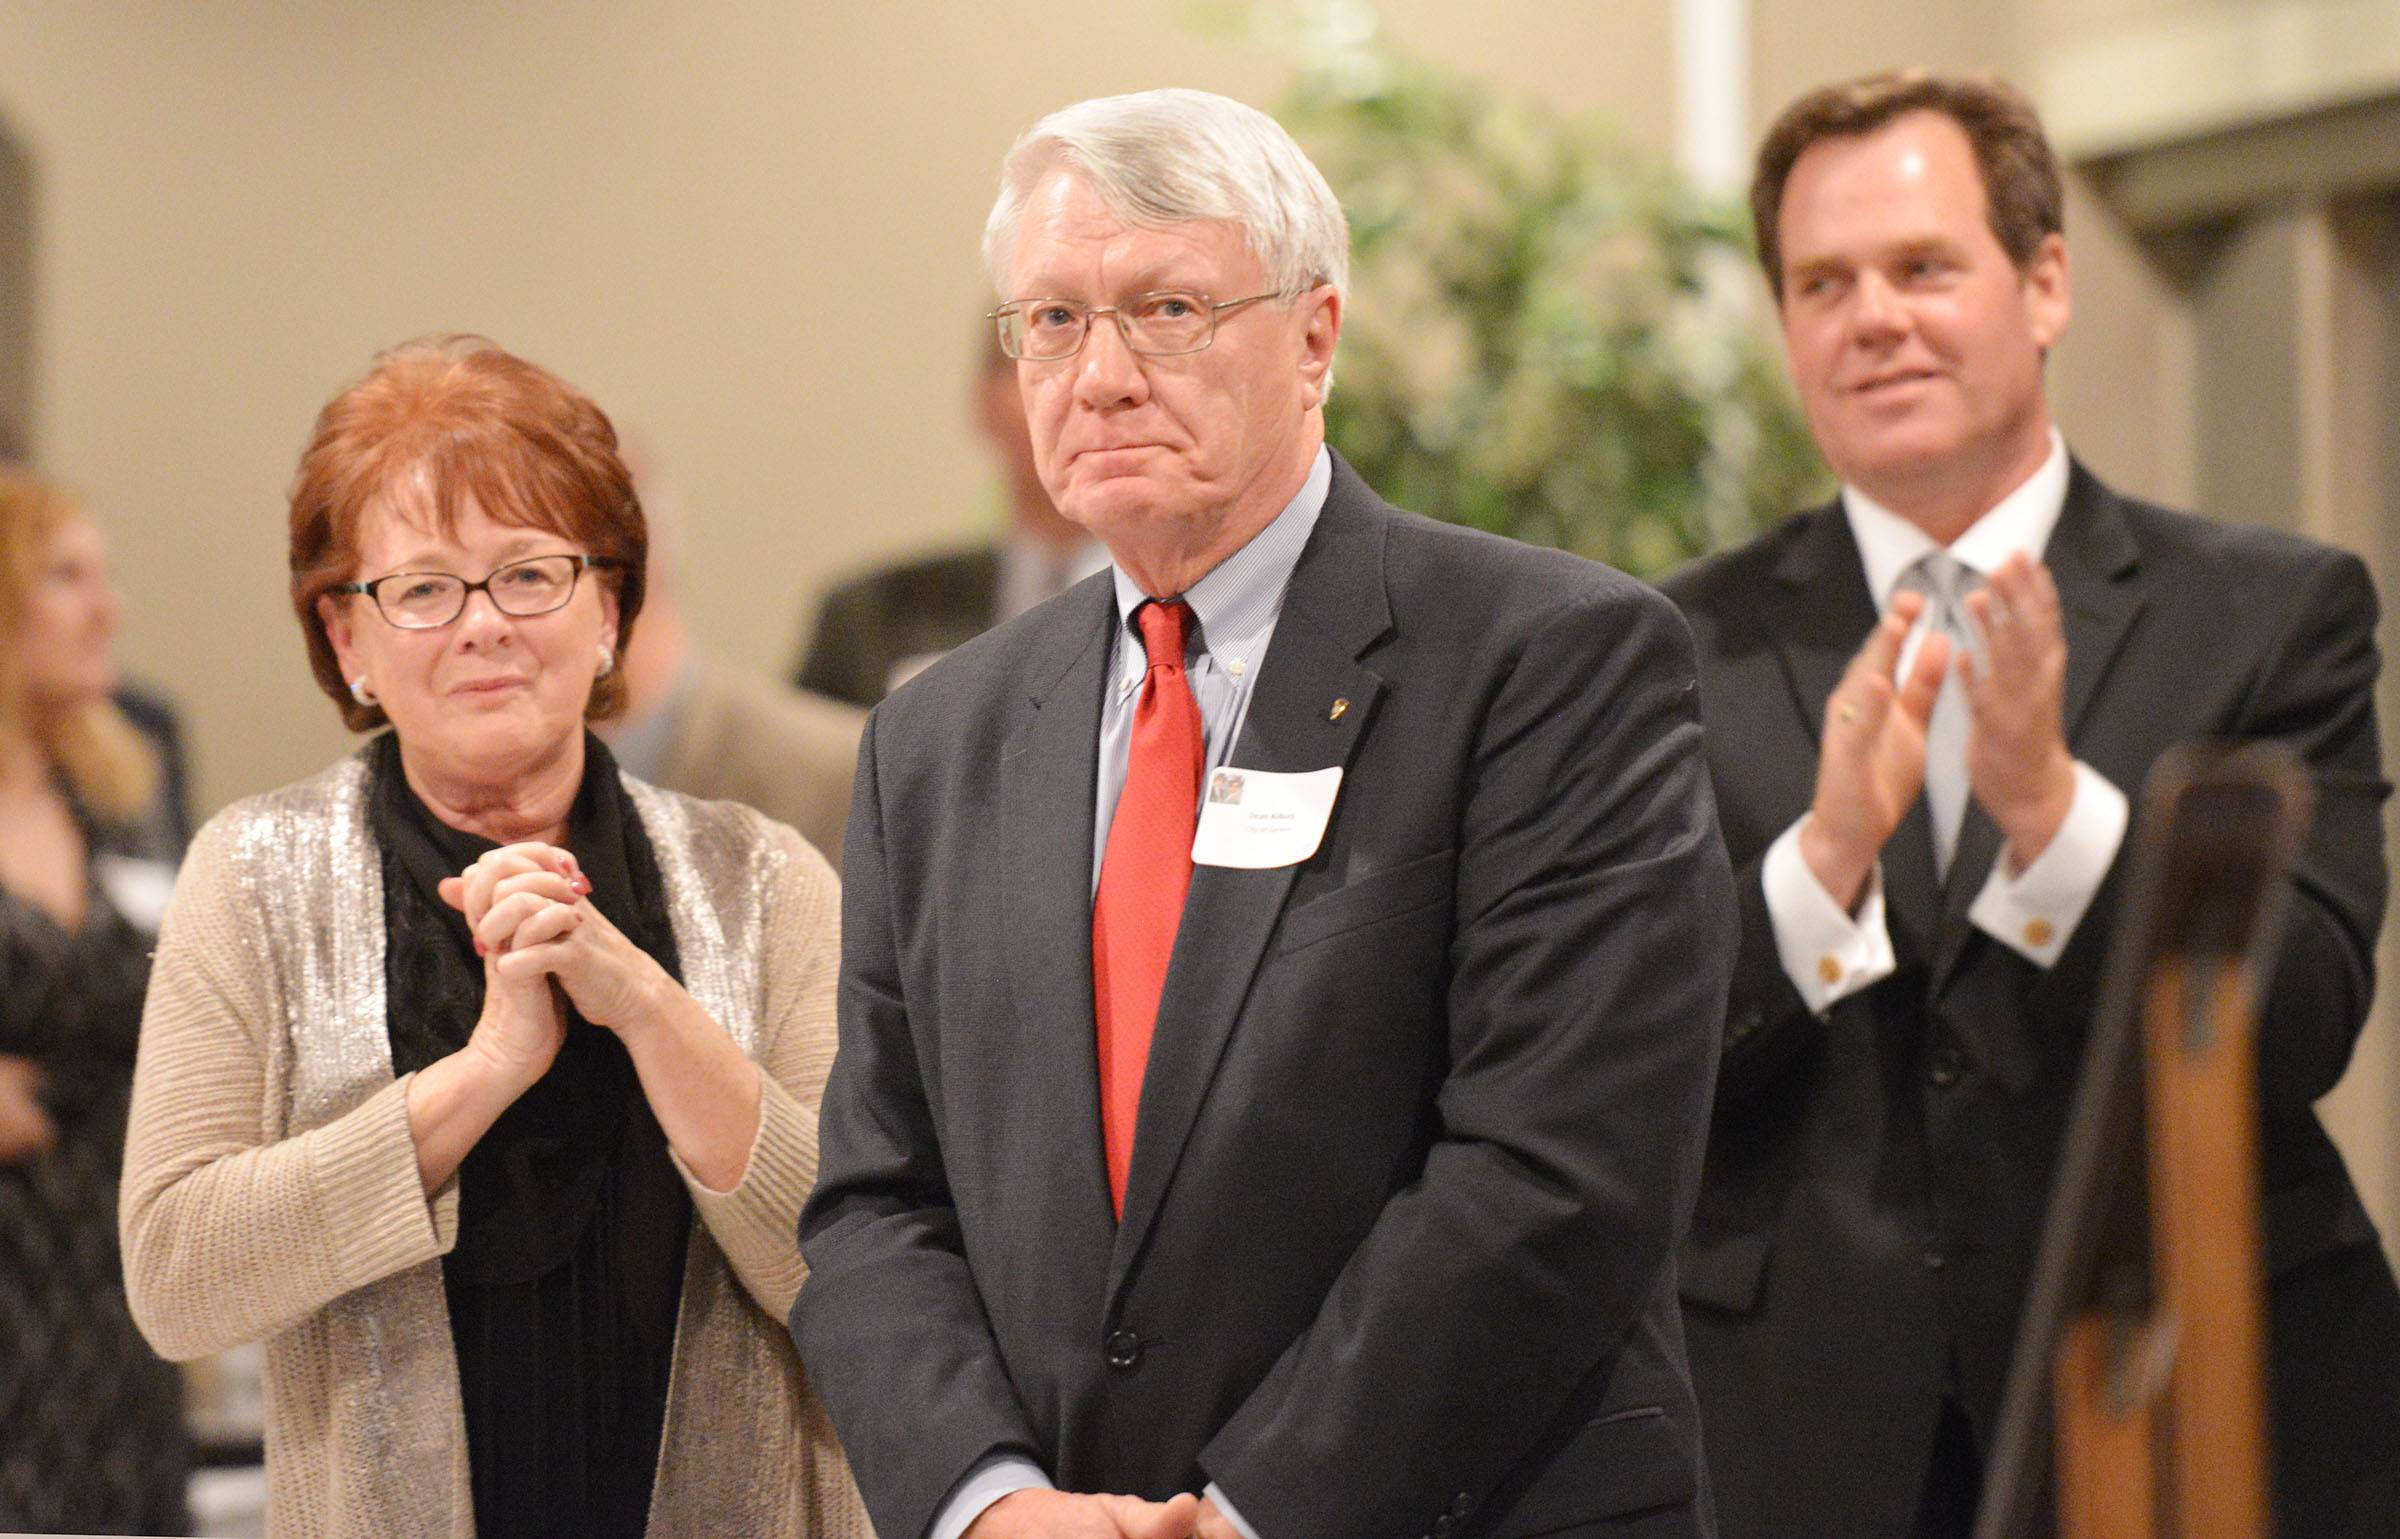 Dean Kilburg stands with his wife, Linda, and is applauded by Geneva Mayor Kevin Burns at the Geneva Chamber of Commerce banquet Thursday night. He received the prestigious Wood Community Service Award.